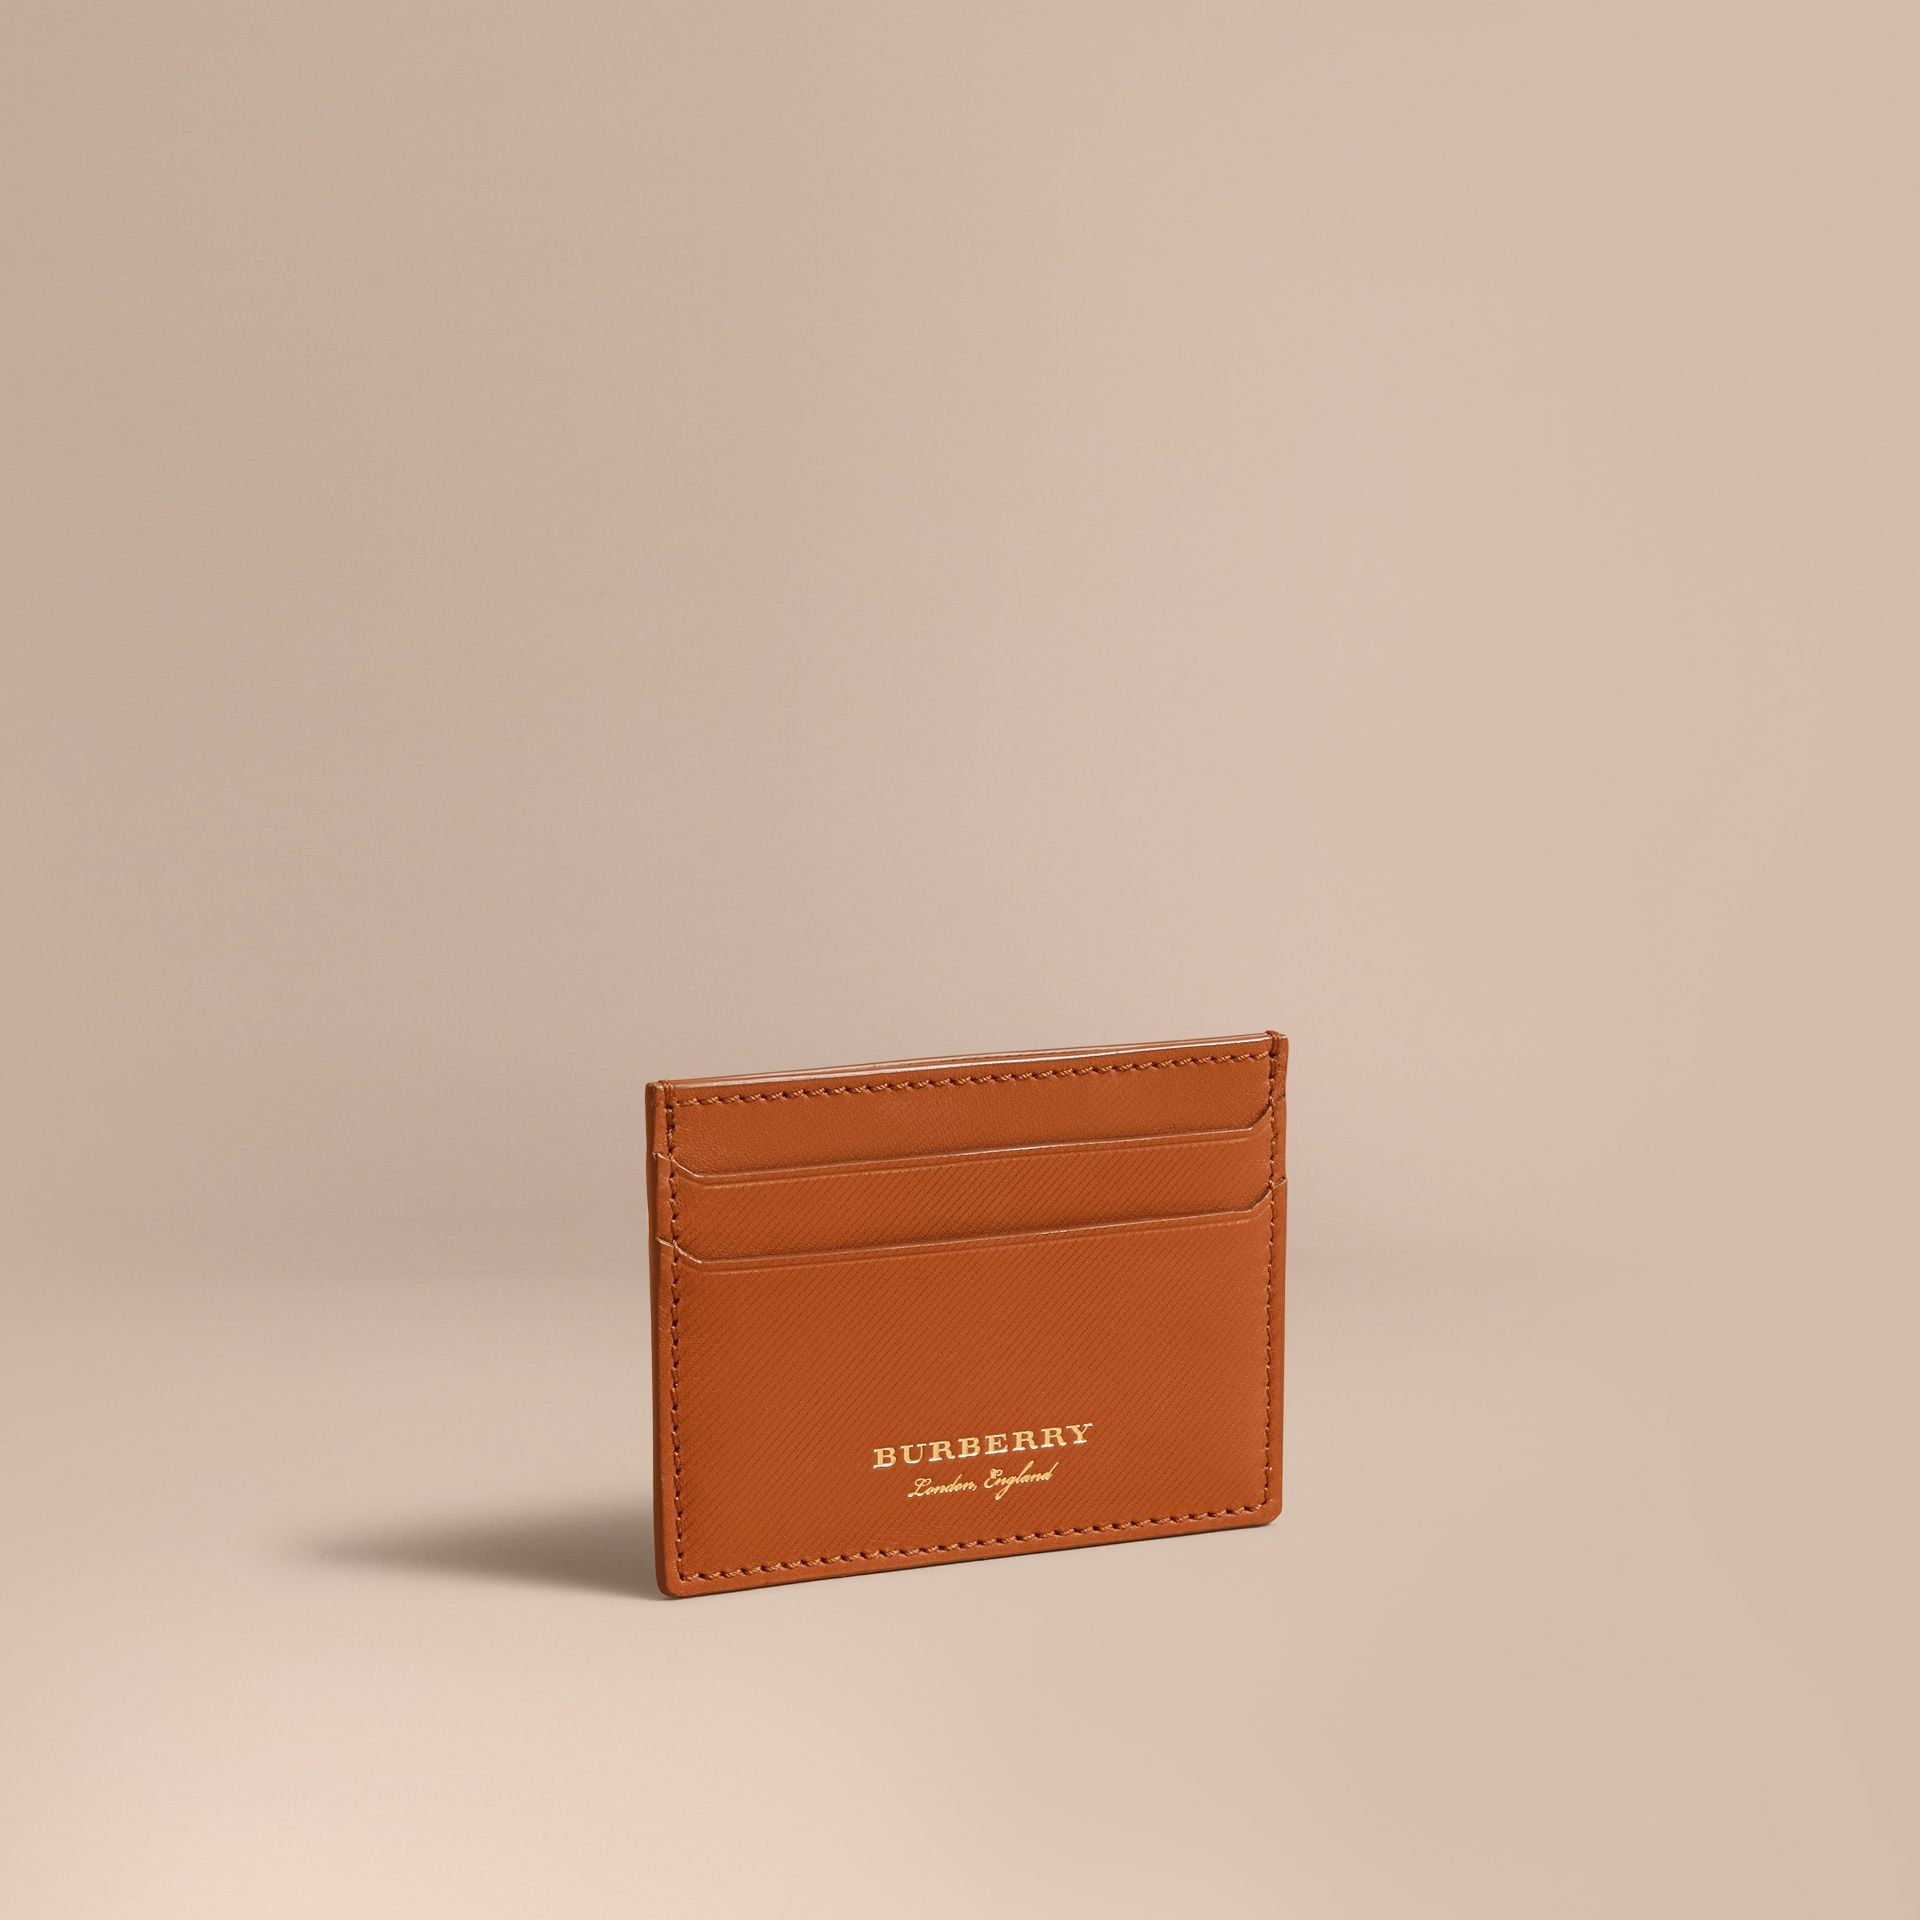 Trench Leather Card Case in Tan - Men | Burberry Singapore - gallery image 1